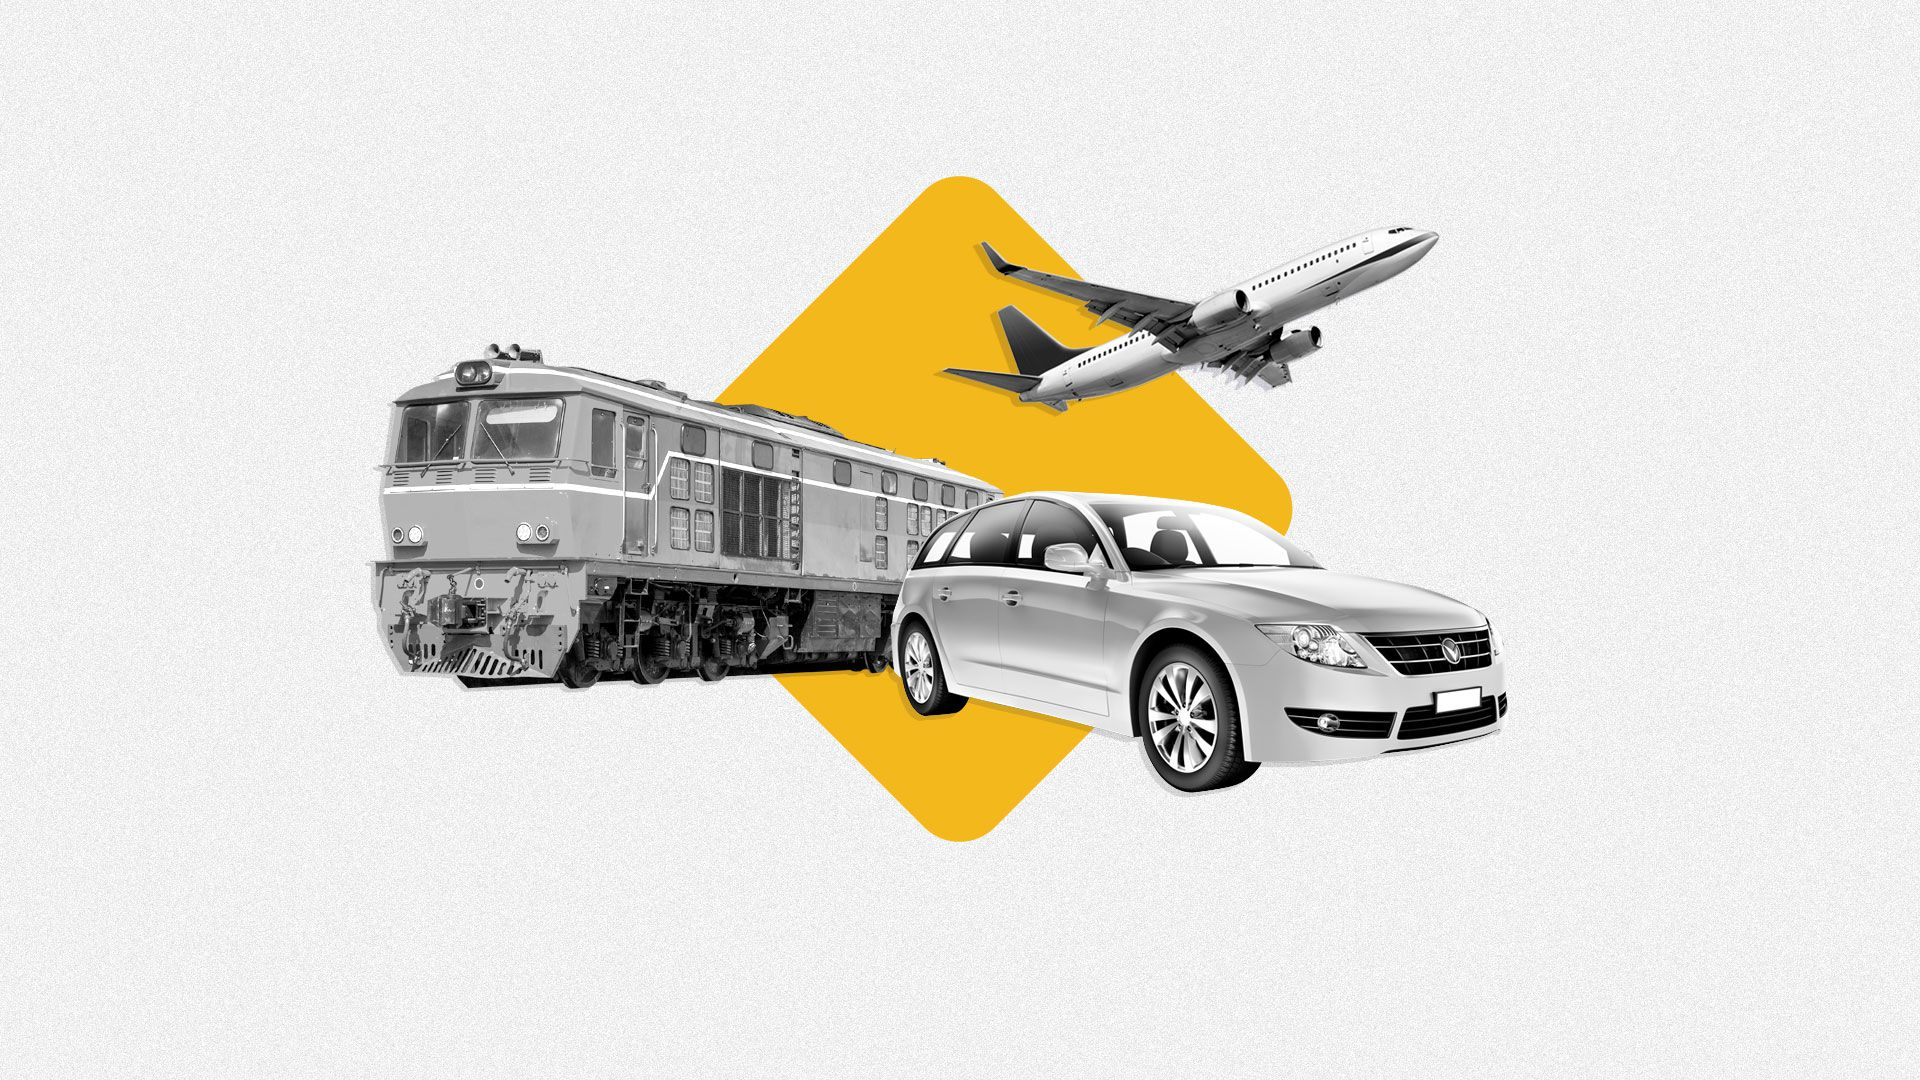 The state of transportation: Stuck between tech of the future and security of the past